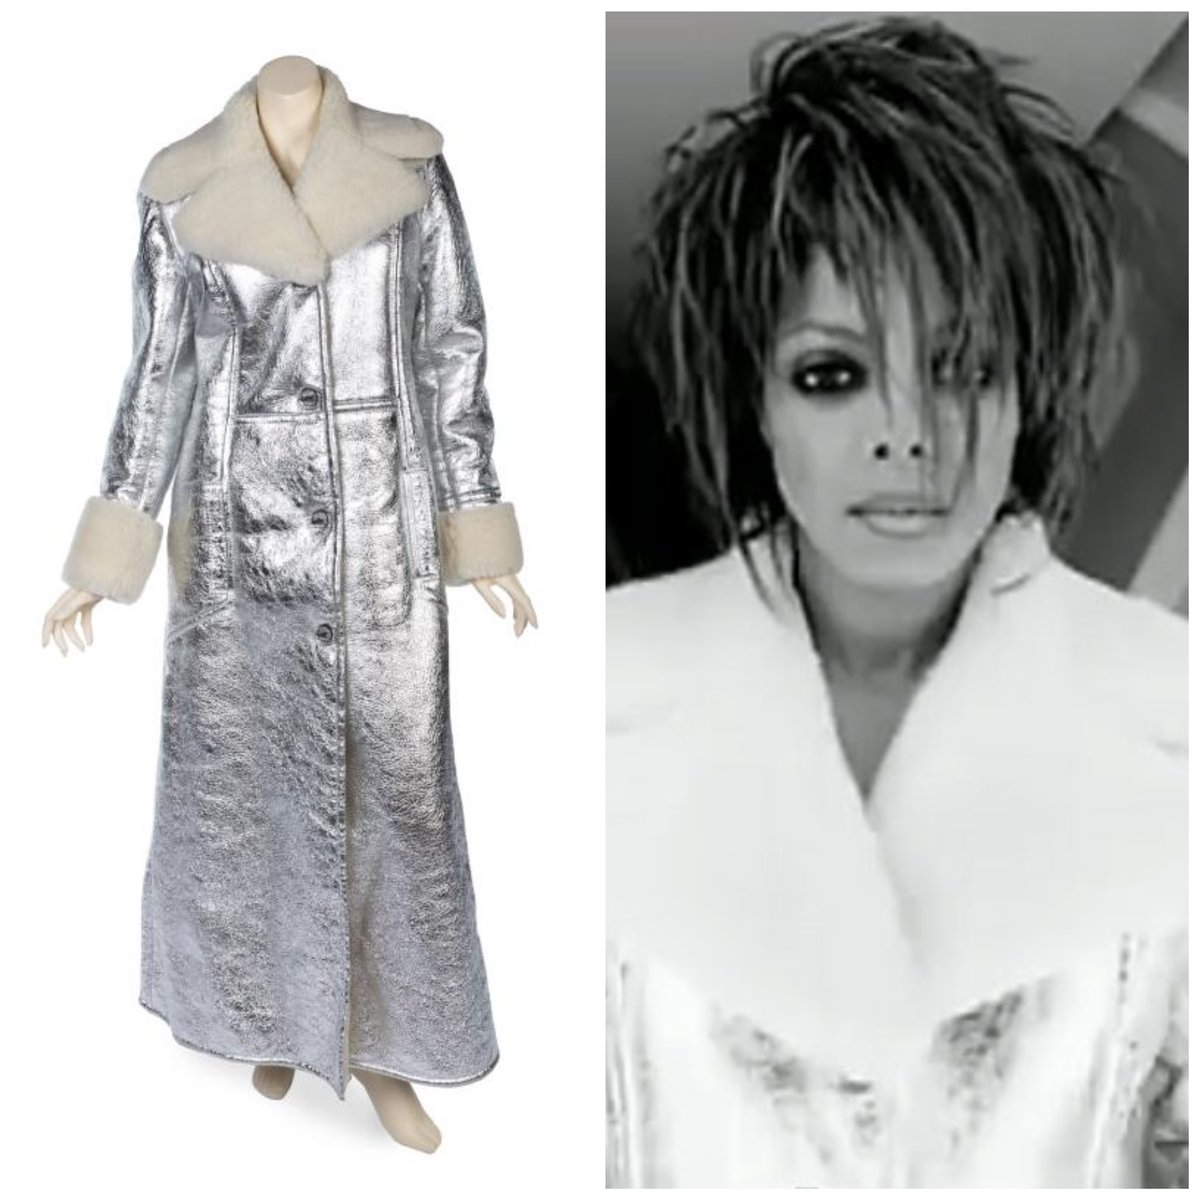 janet-jackson-scream-coat-music-video-sold-for-50000-at-julien-auction